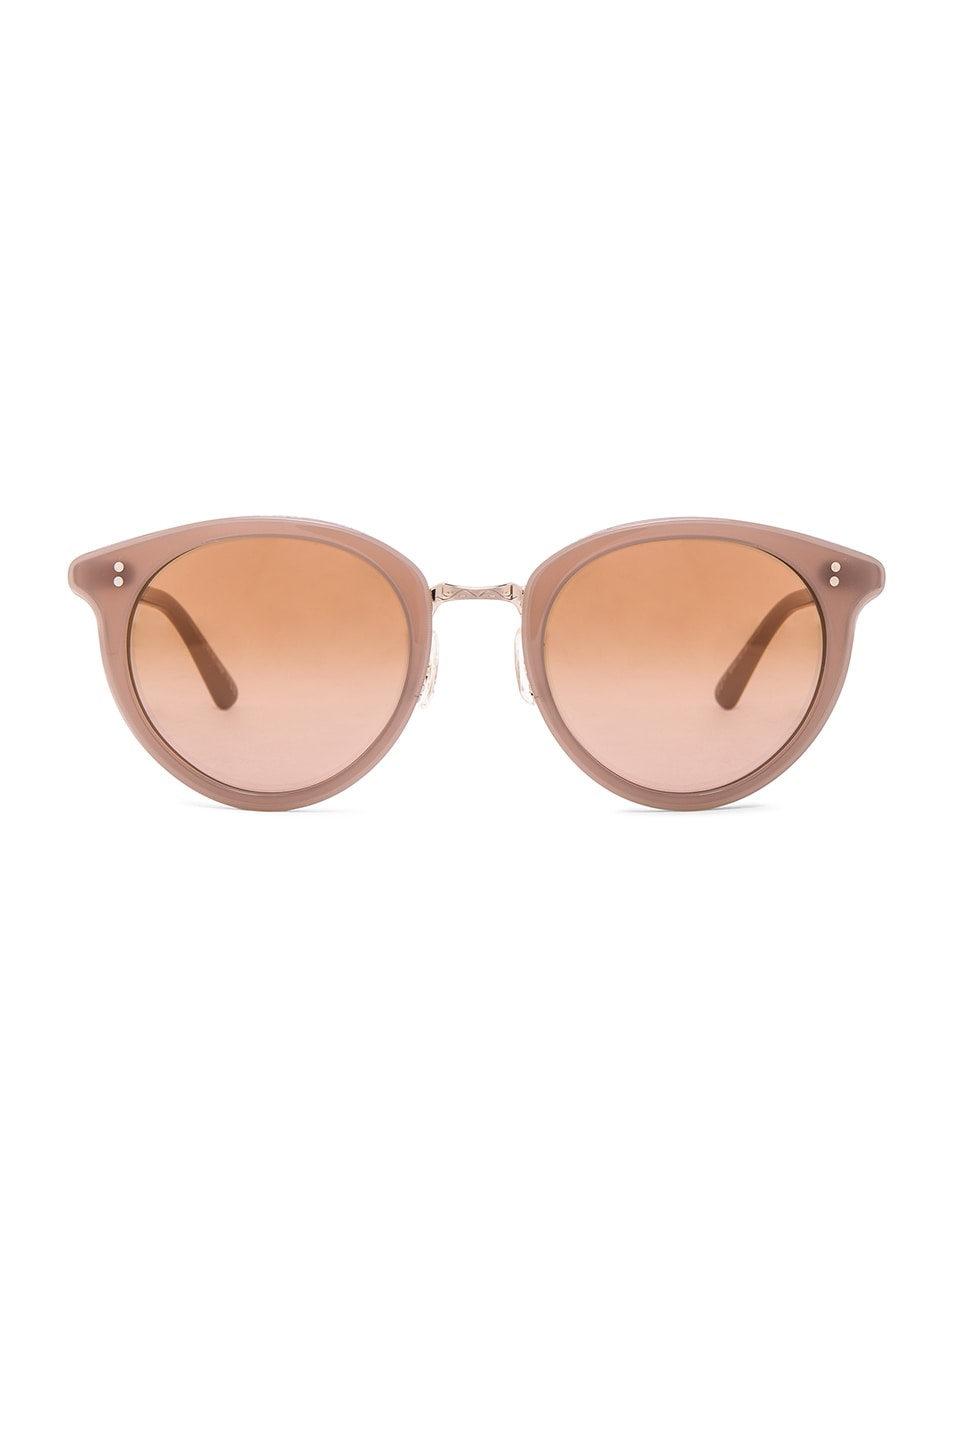 Image 1 of Oliver Peoples Limited Edition Spelman Sunglasses in Linen